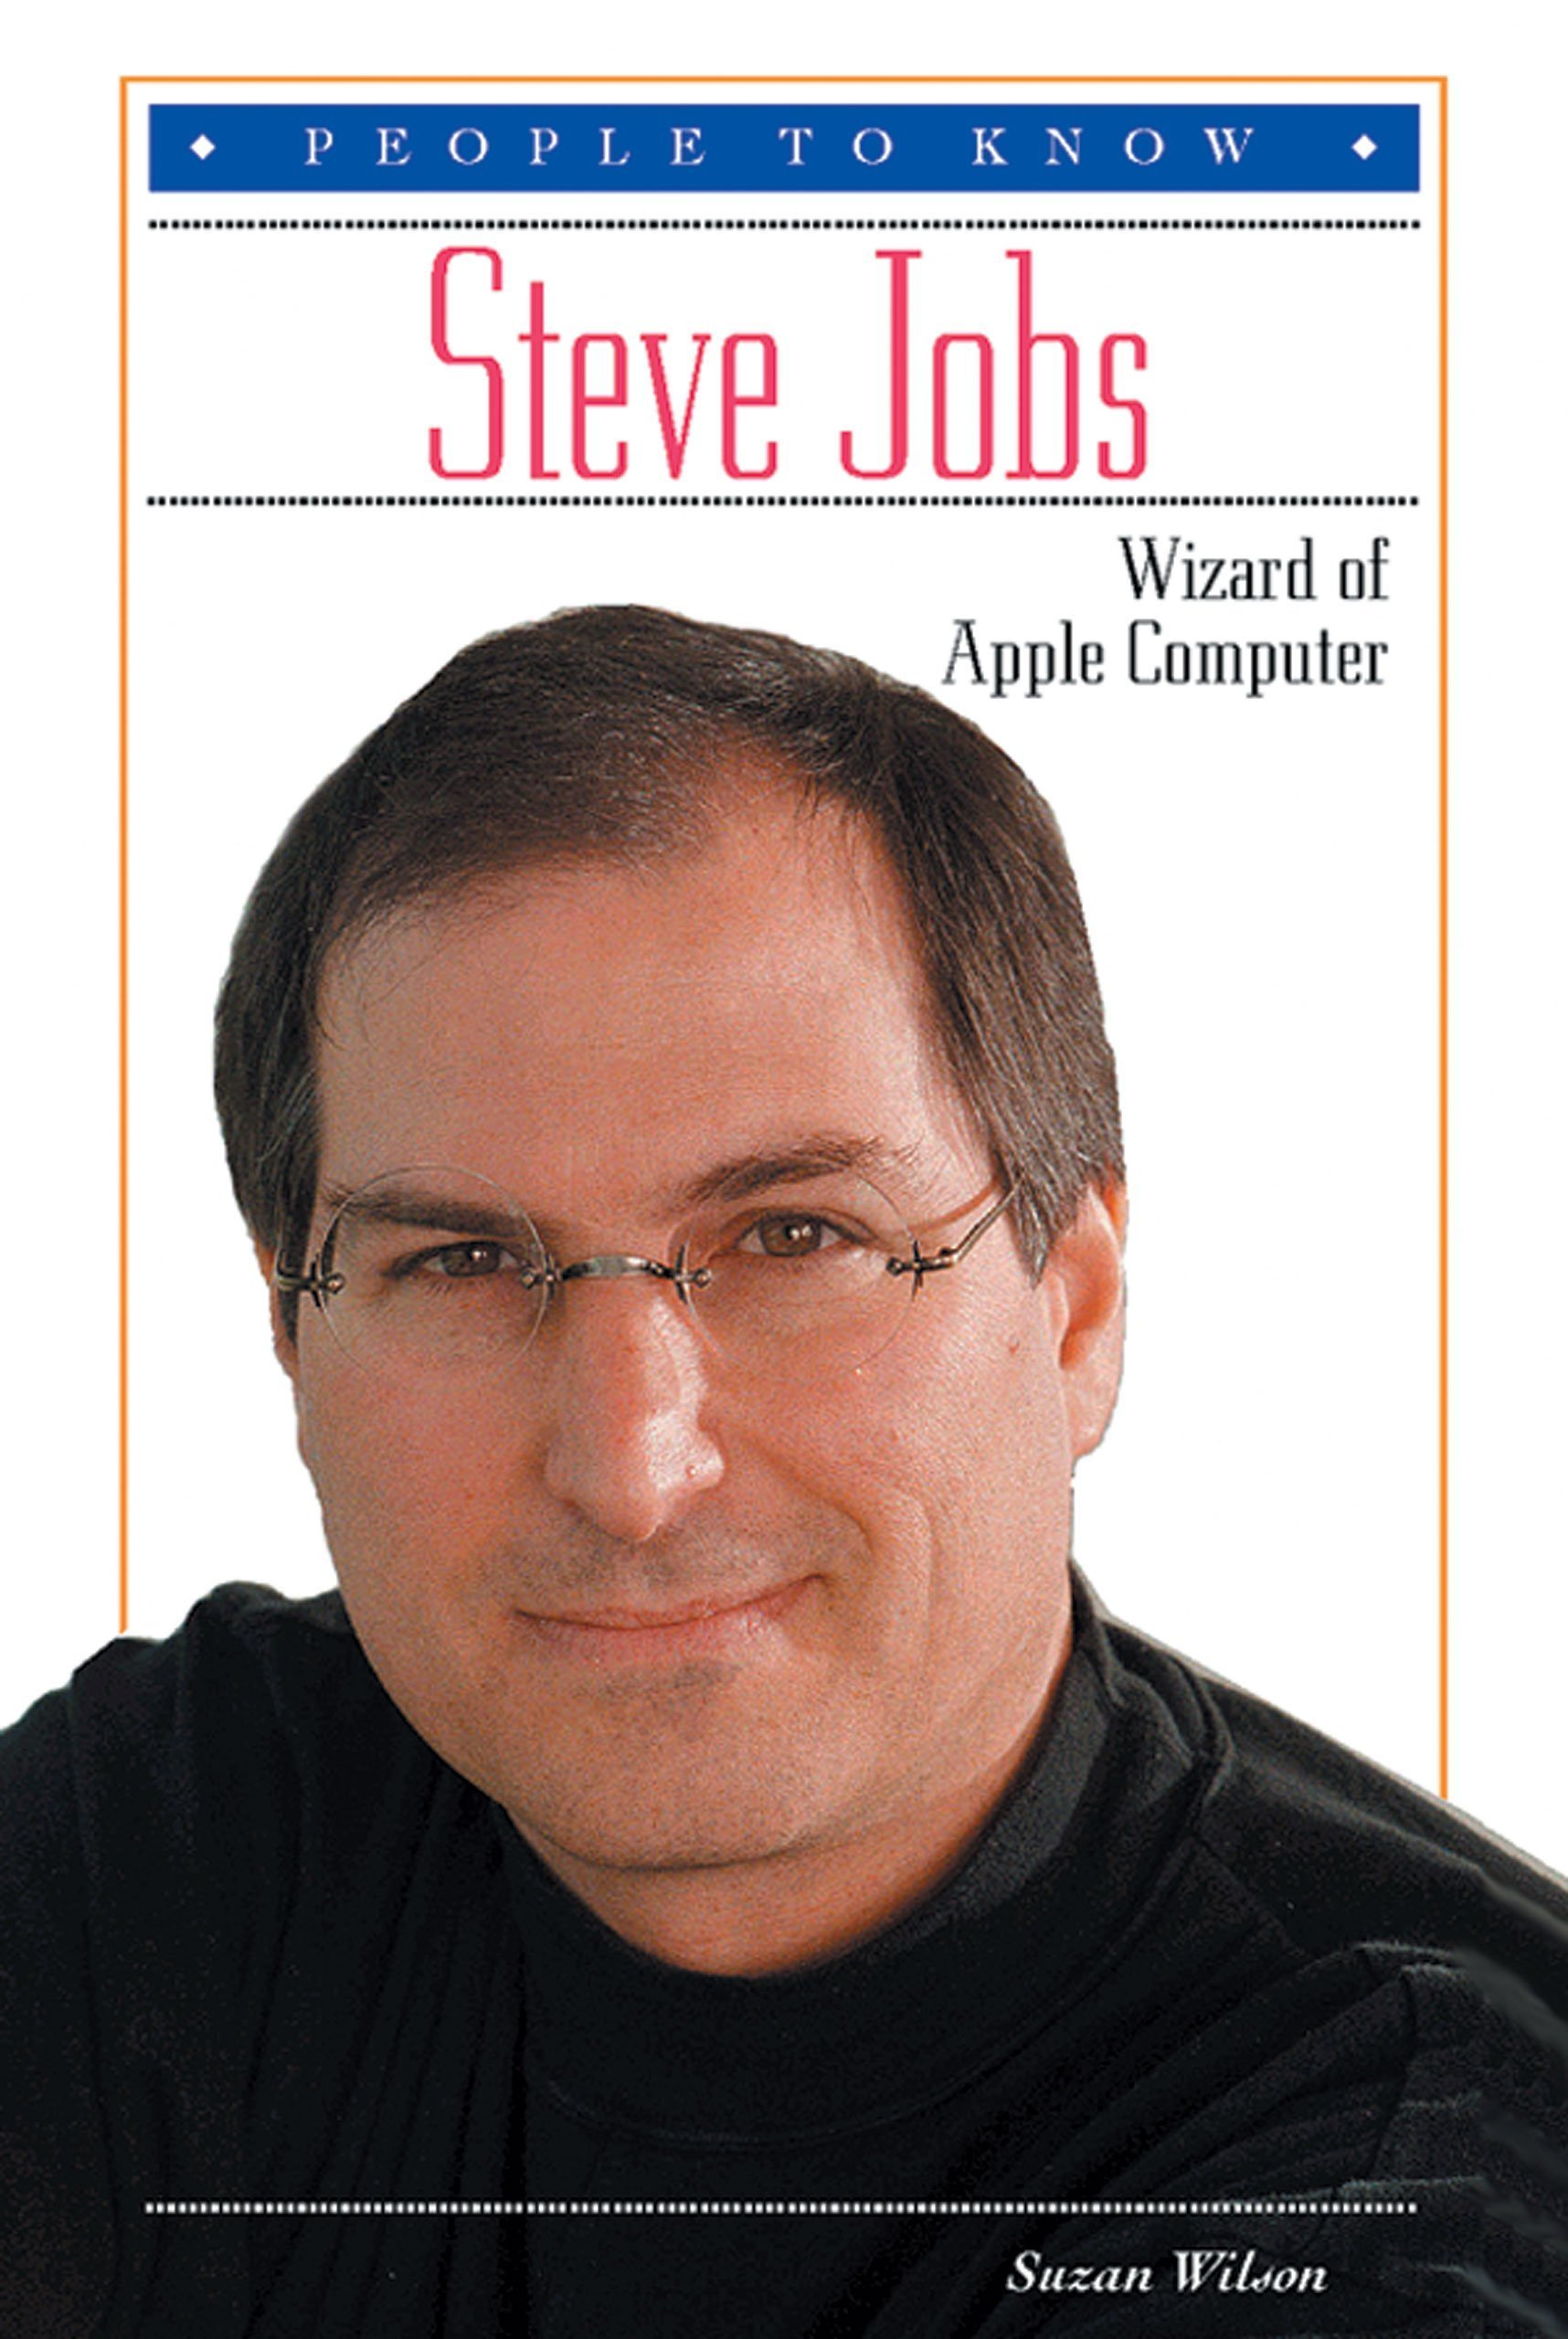 Steve Jobs Wizard Of Apple Puter People To Know Suzan Wilson